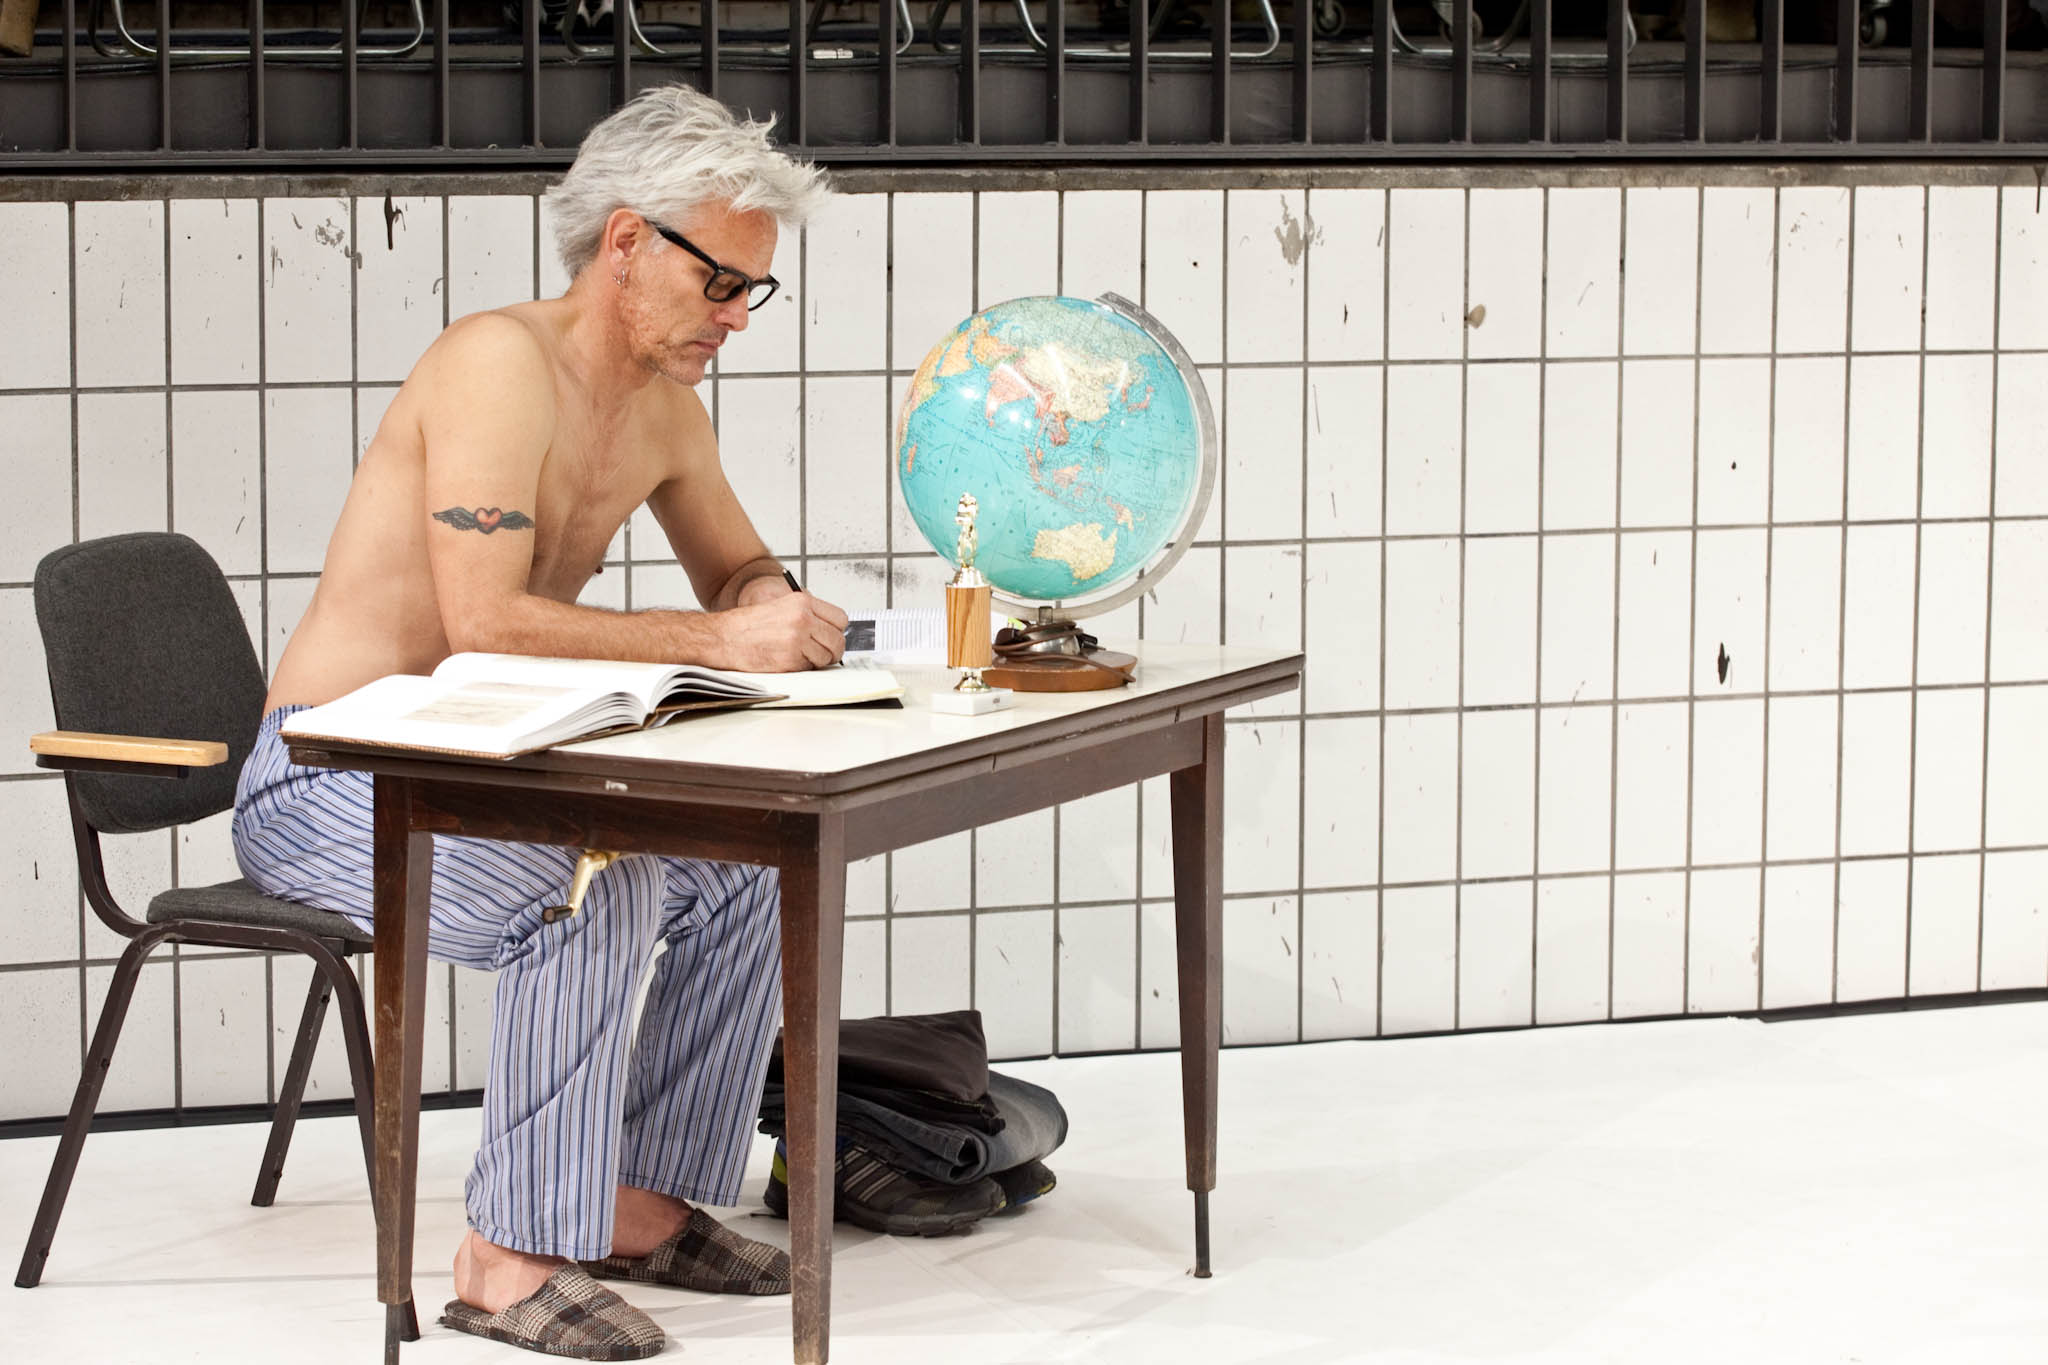 Curtis, in pajama pants with silver hair and glasses, writes at a wooden desk, with a globe, trophy, and open book. (photo: Sven Hagolani)